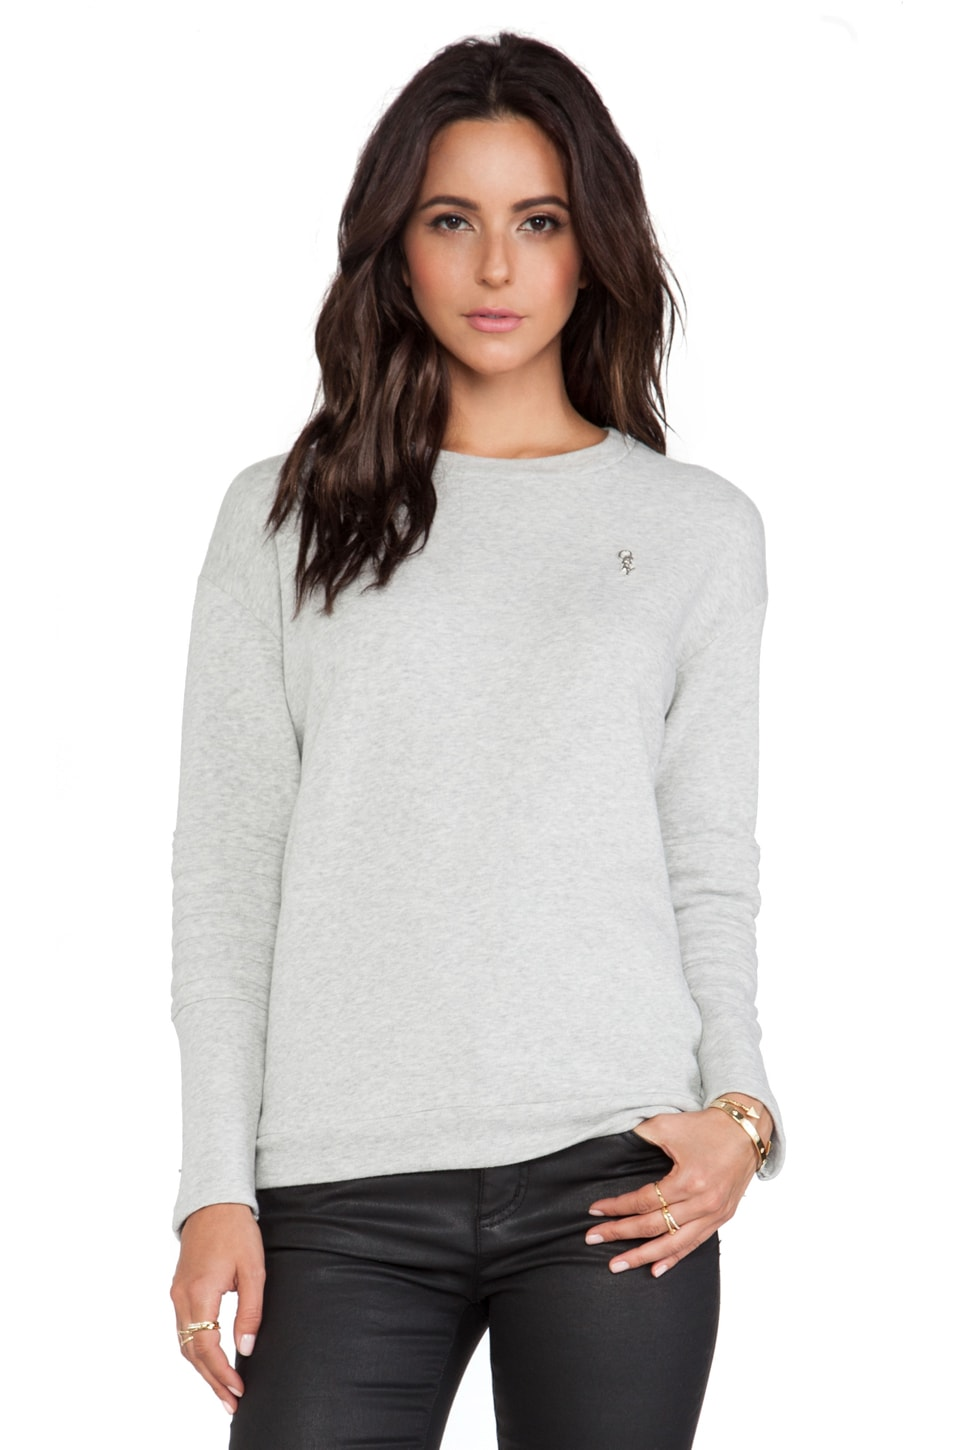 Obey Lofty Mountain Moto Crew Sweatshirt in Ash Grey